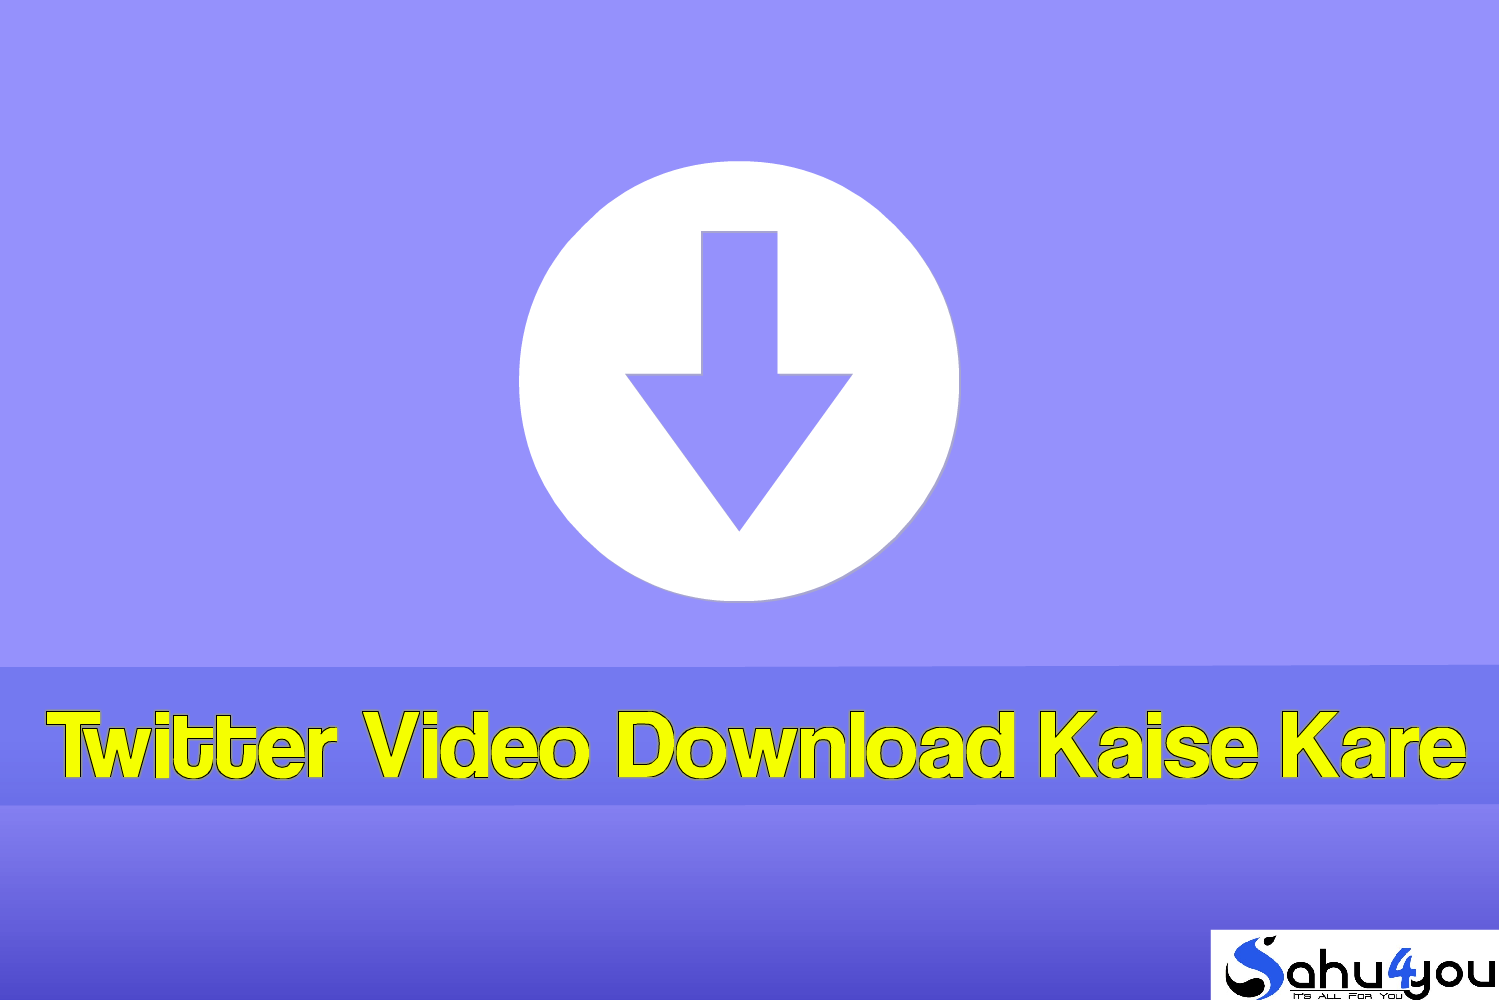 Twitter Video Download Kaise Karte hain?